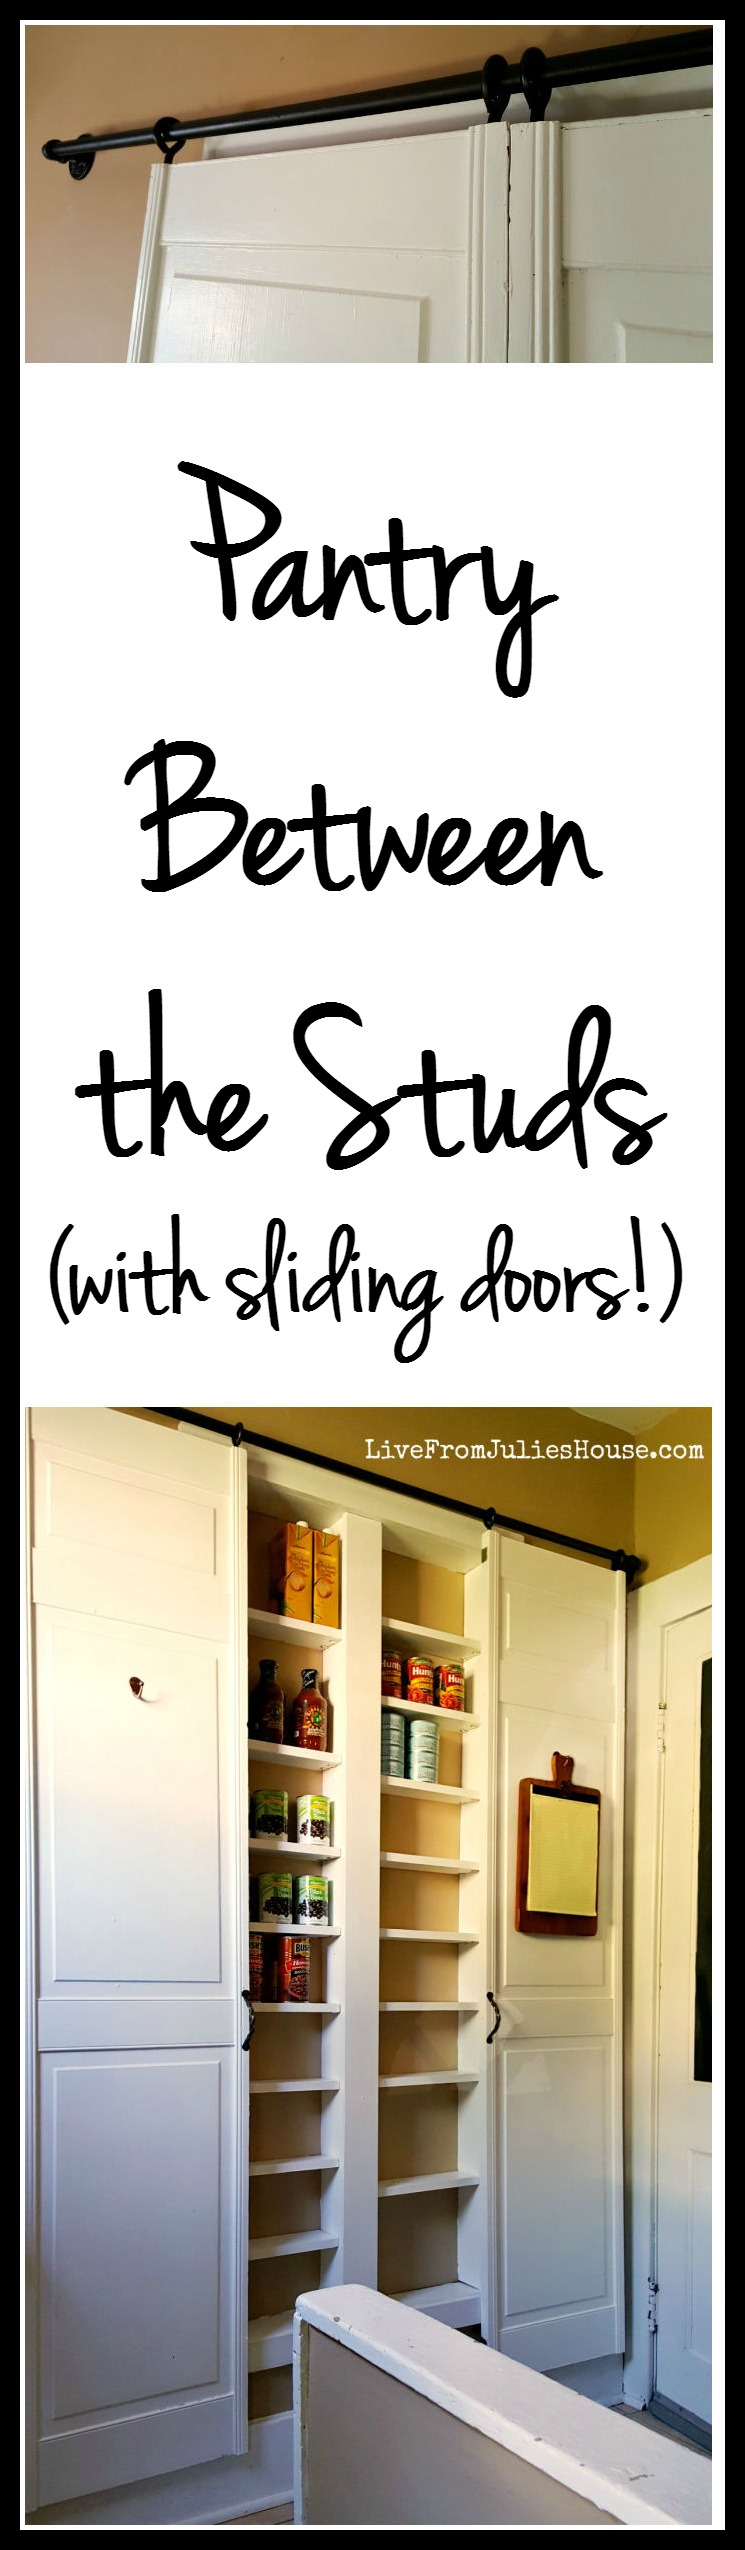 Pantry Between the Studs - Live from Julie\'s House